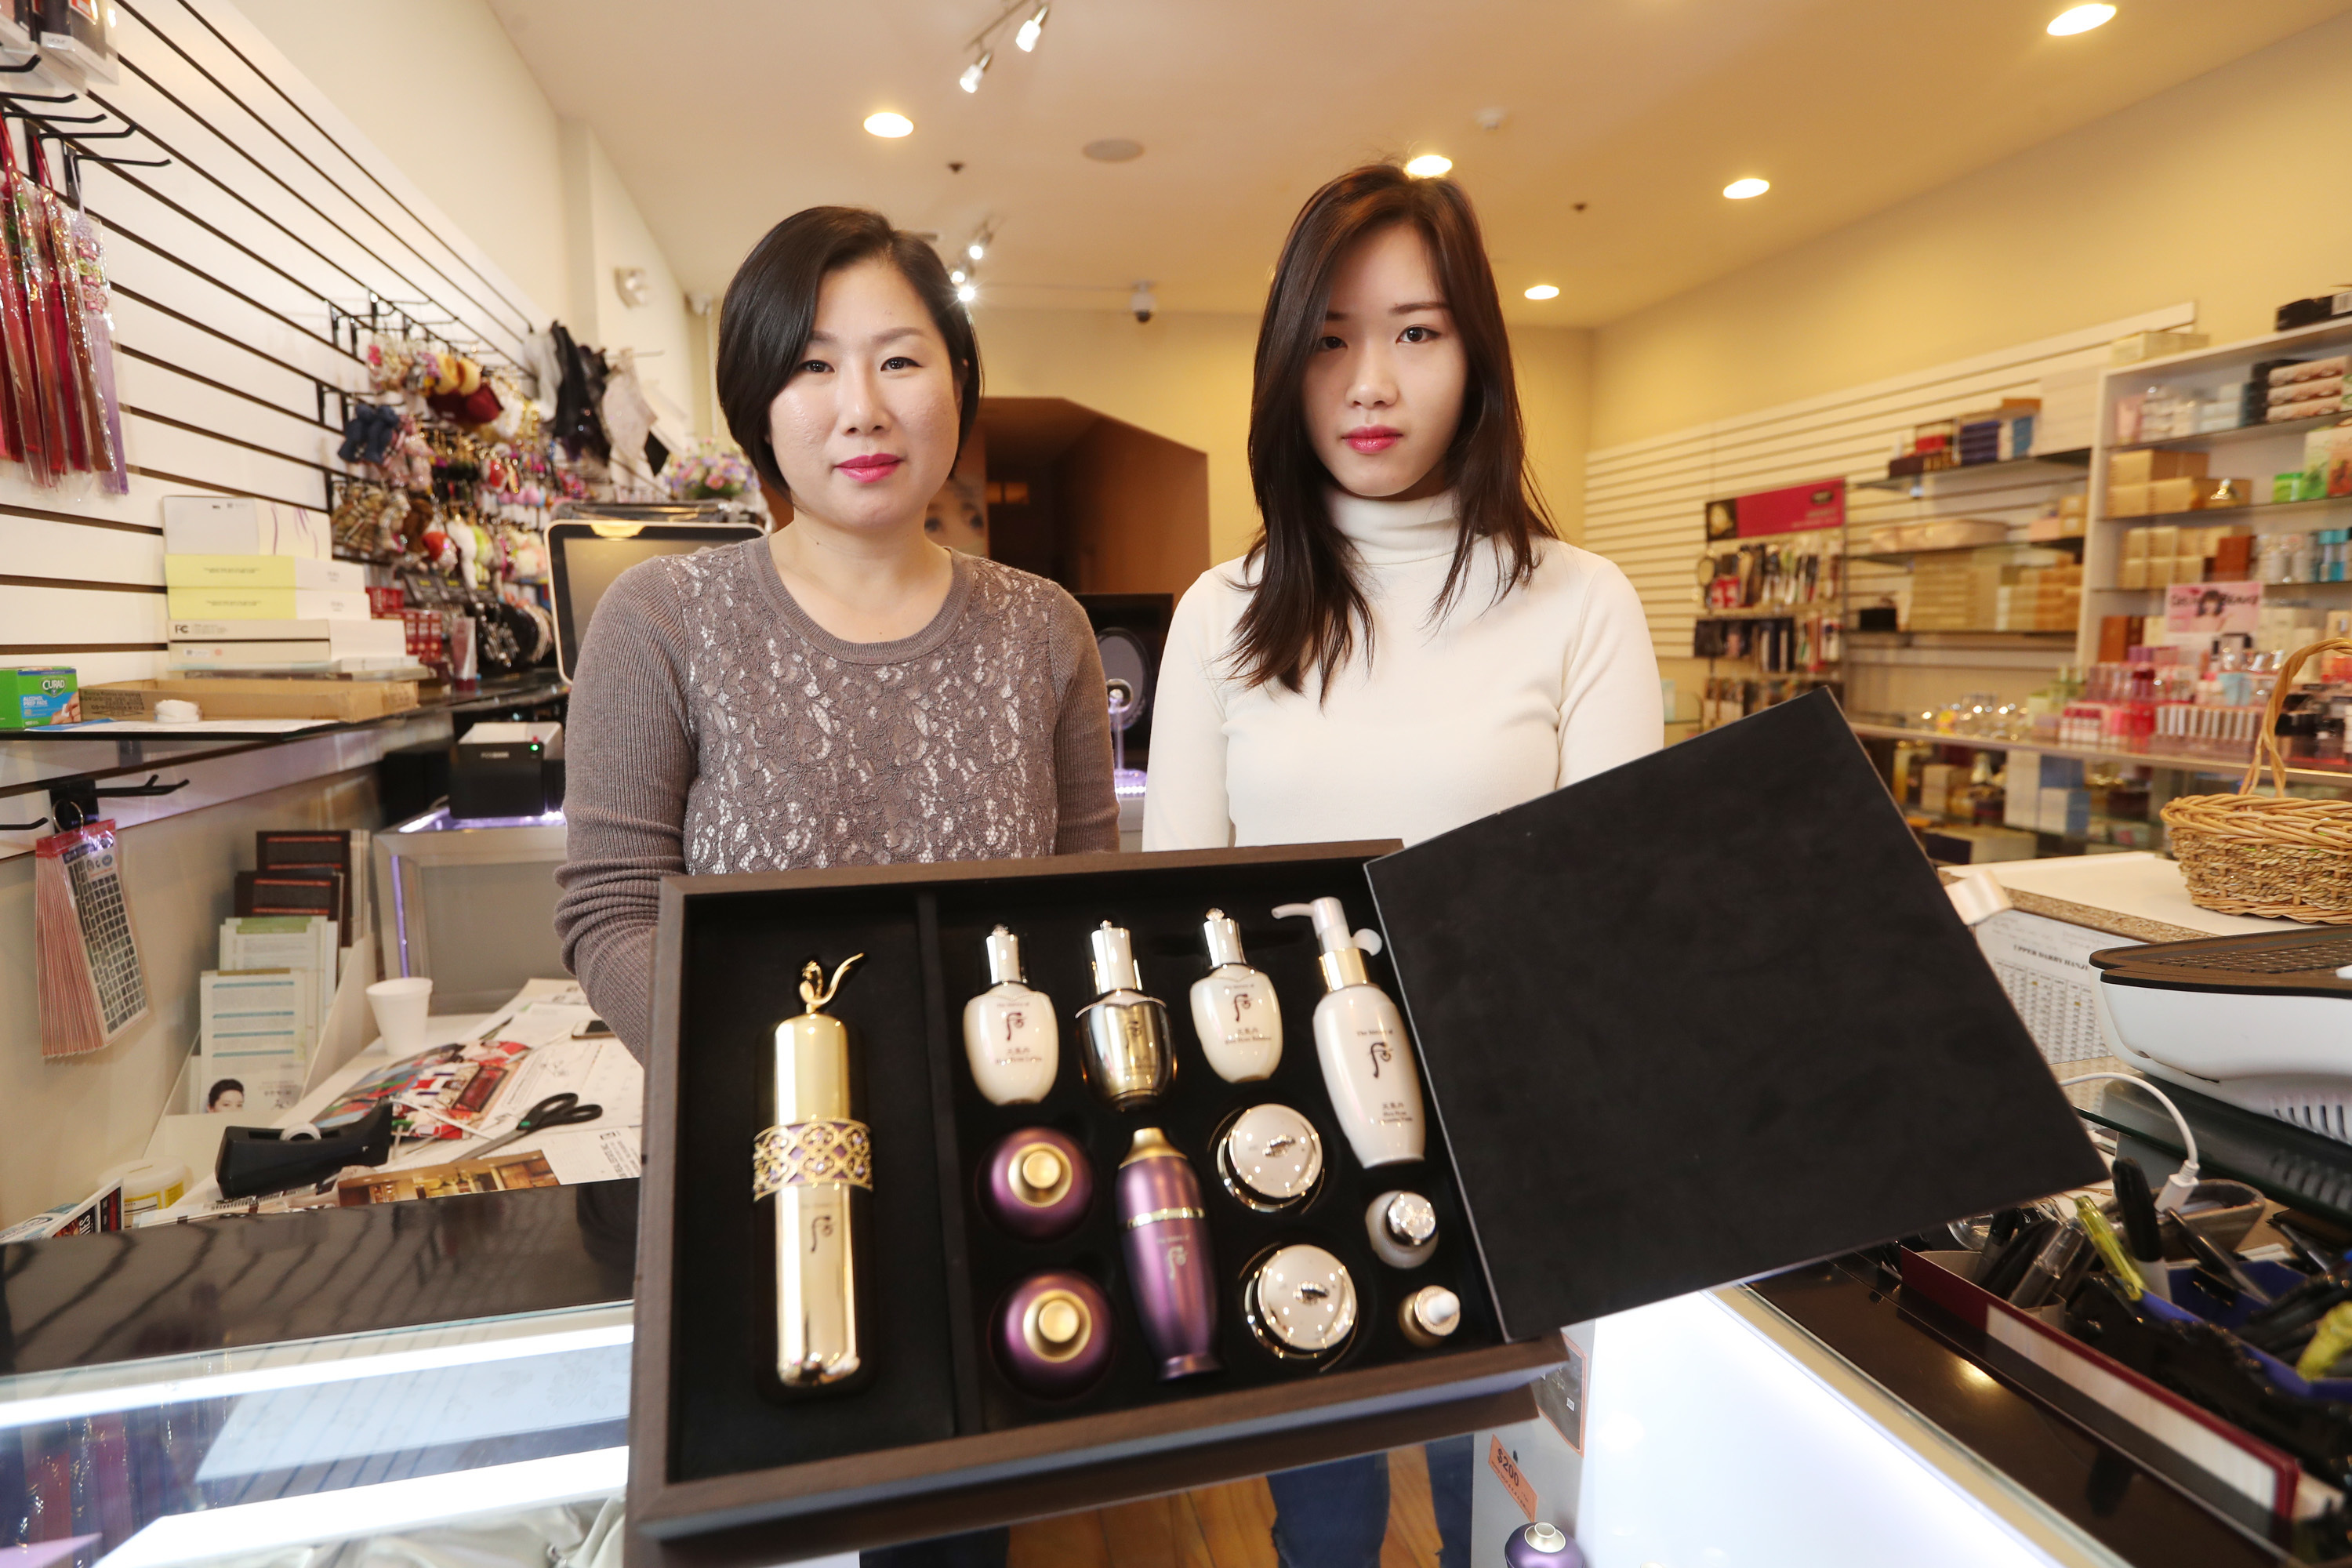 Jeanne Lee (L) and Linda Xu (R) show off the Whoo purple line at $1,100 cream at Ga-In BeautyZone in Chinatown.